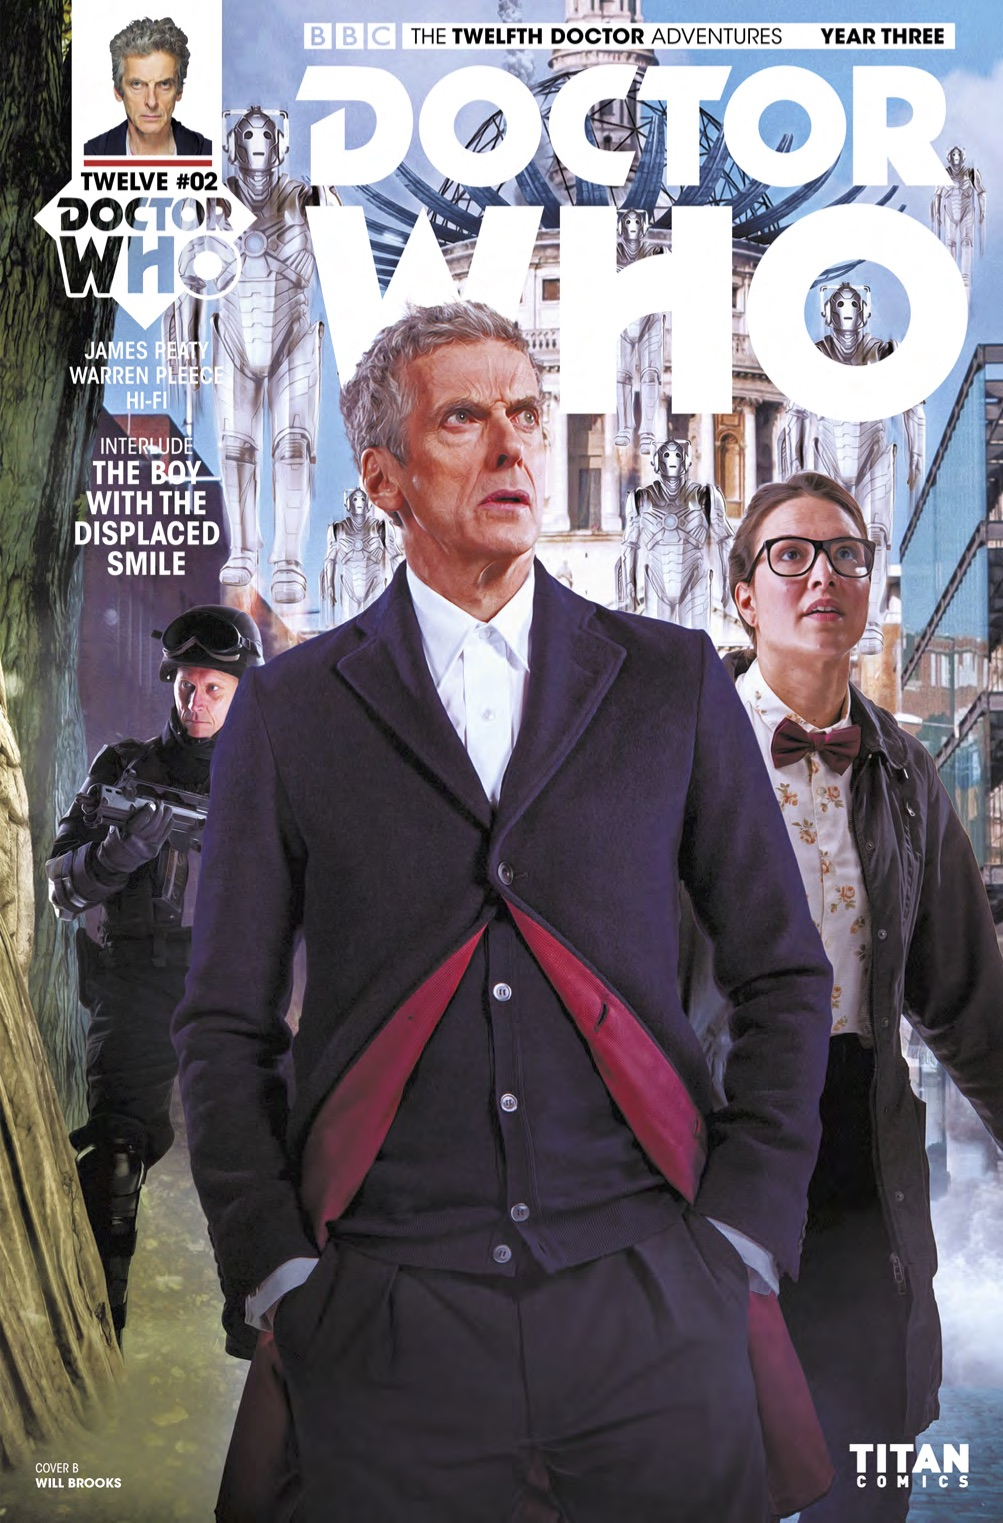 TWELFTH DOCTOR YEAR 3 #2 Cover B (Credit: Titan)